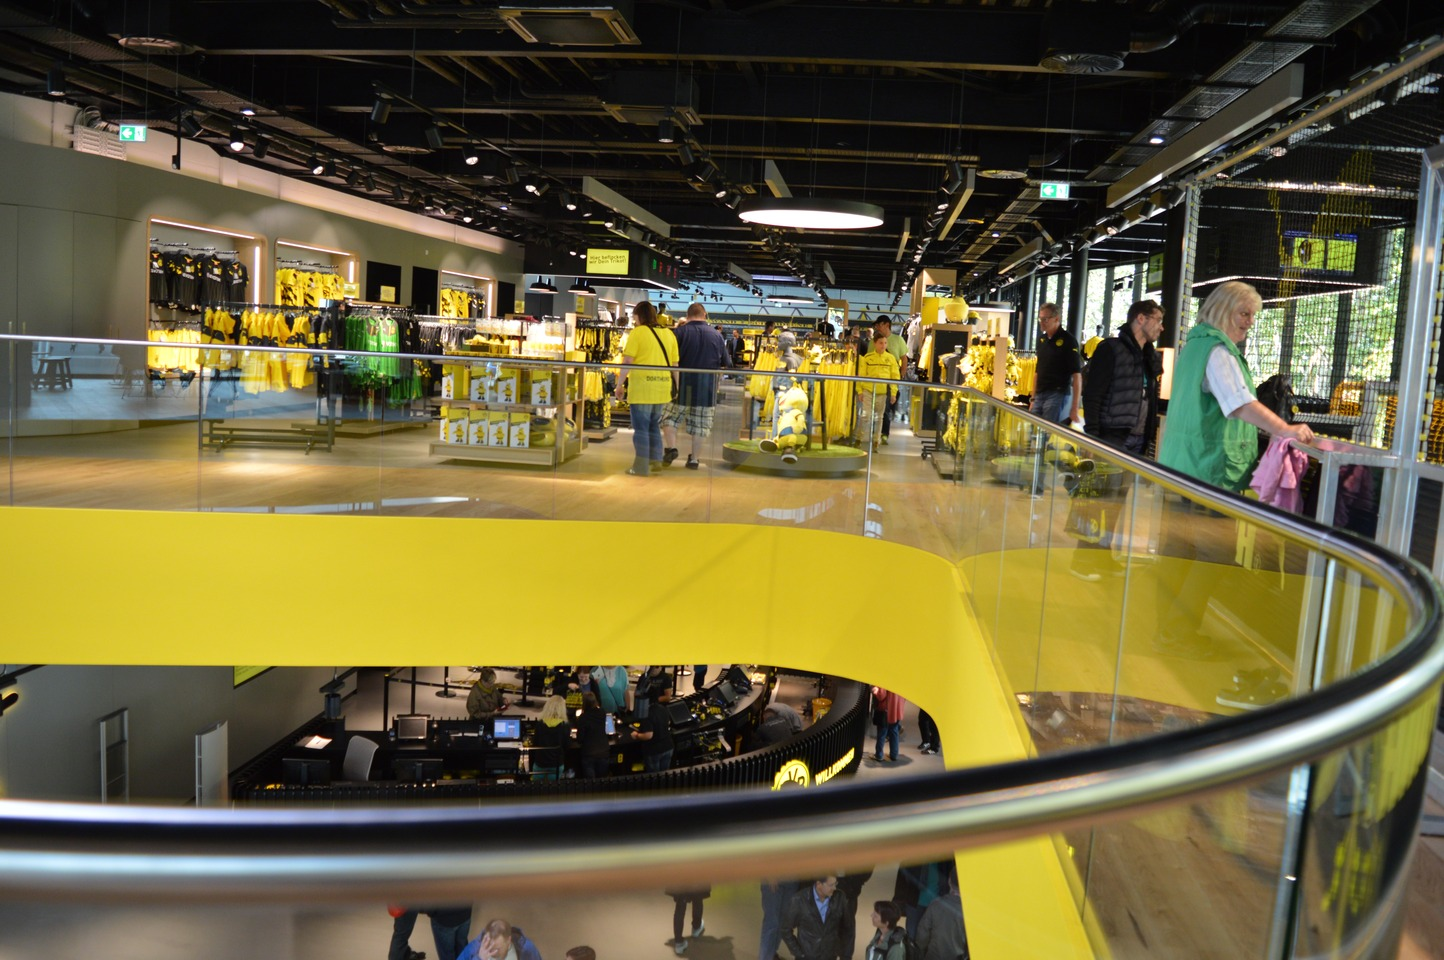 Curved glass balustrade for Signal Iduna Park football stadium